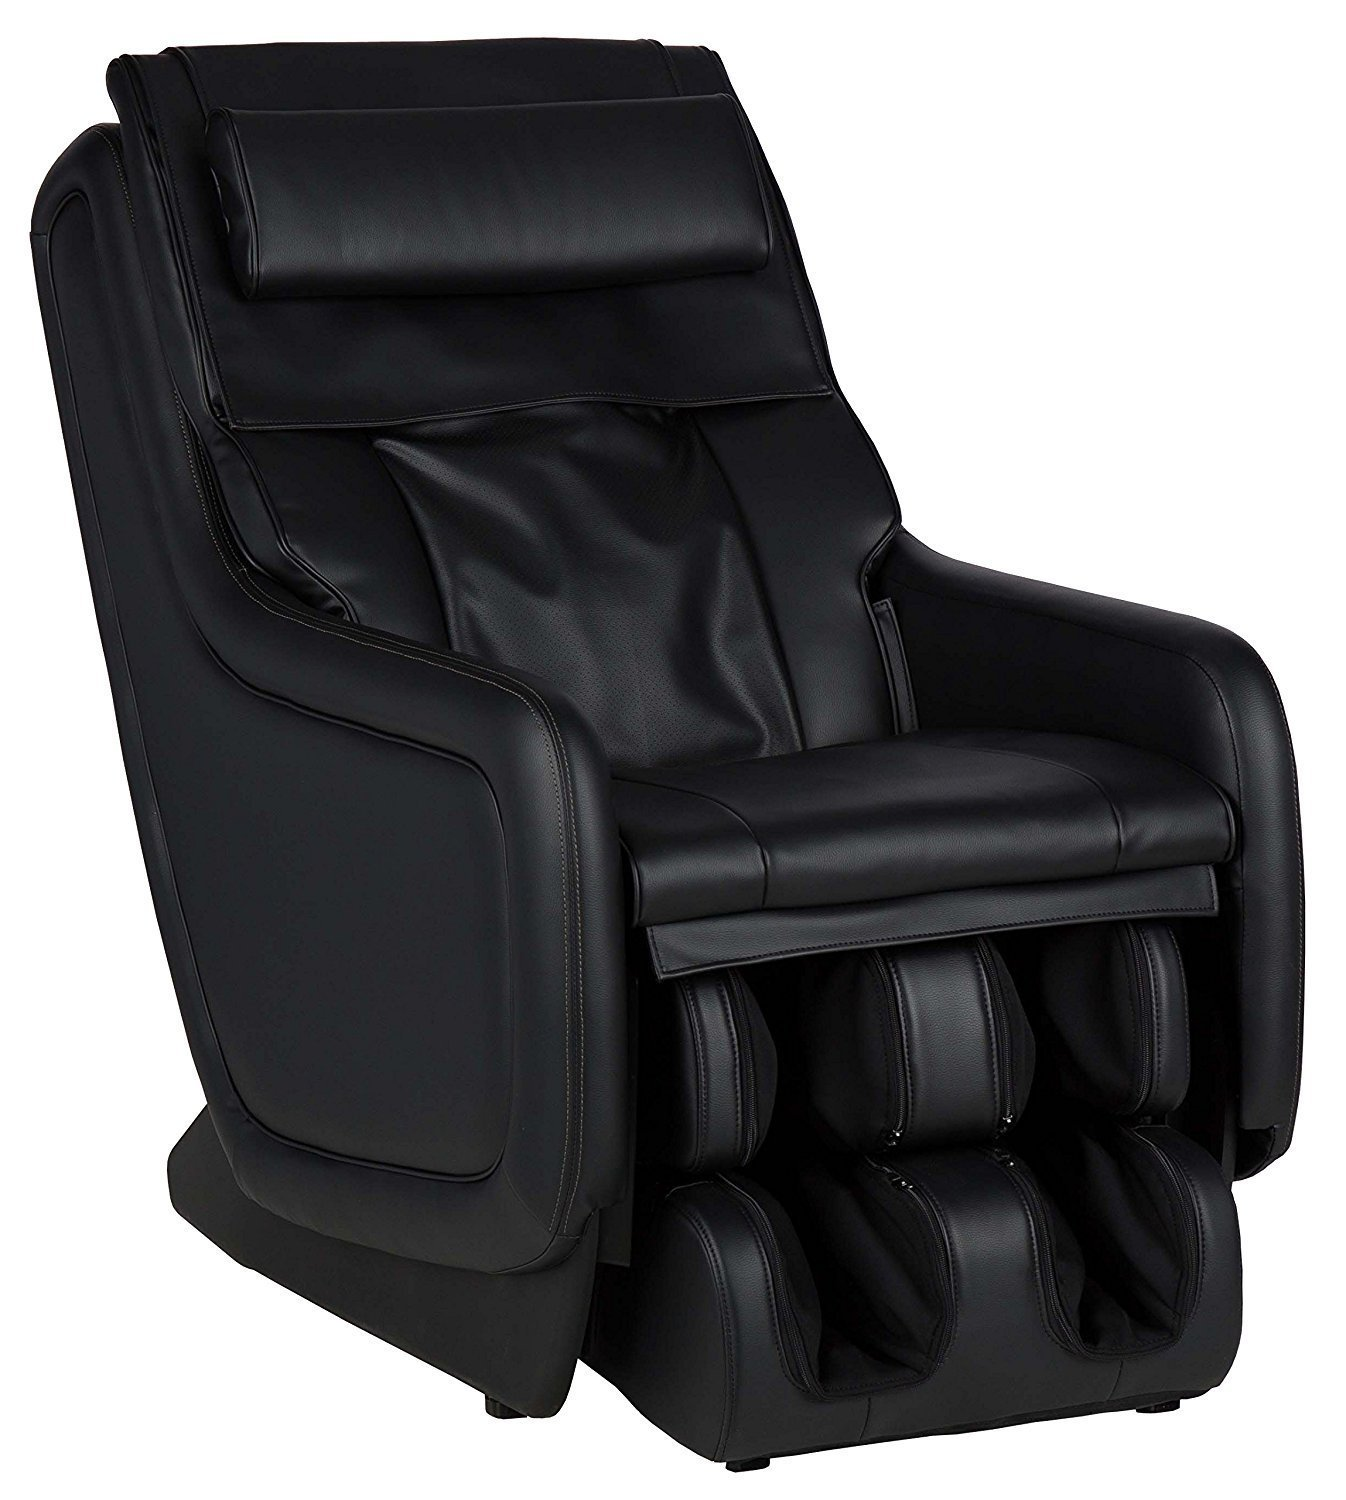 Zerog 5 0 Zero Gravity Premium Massage Chair Home